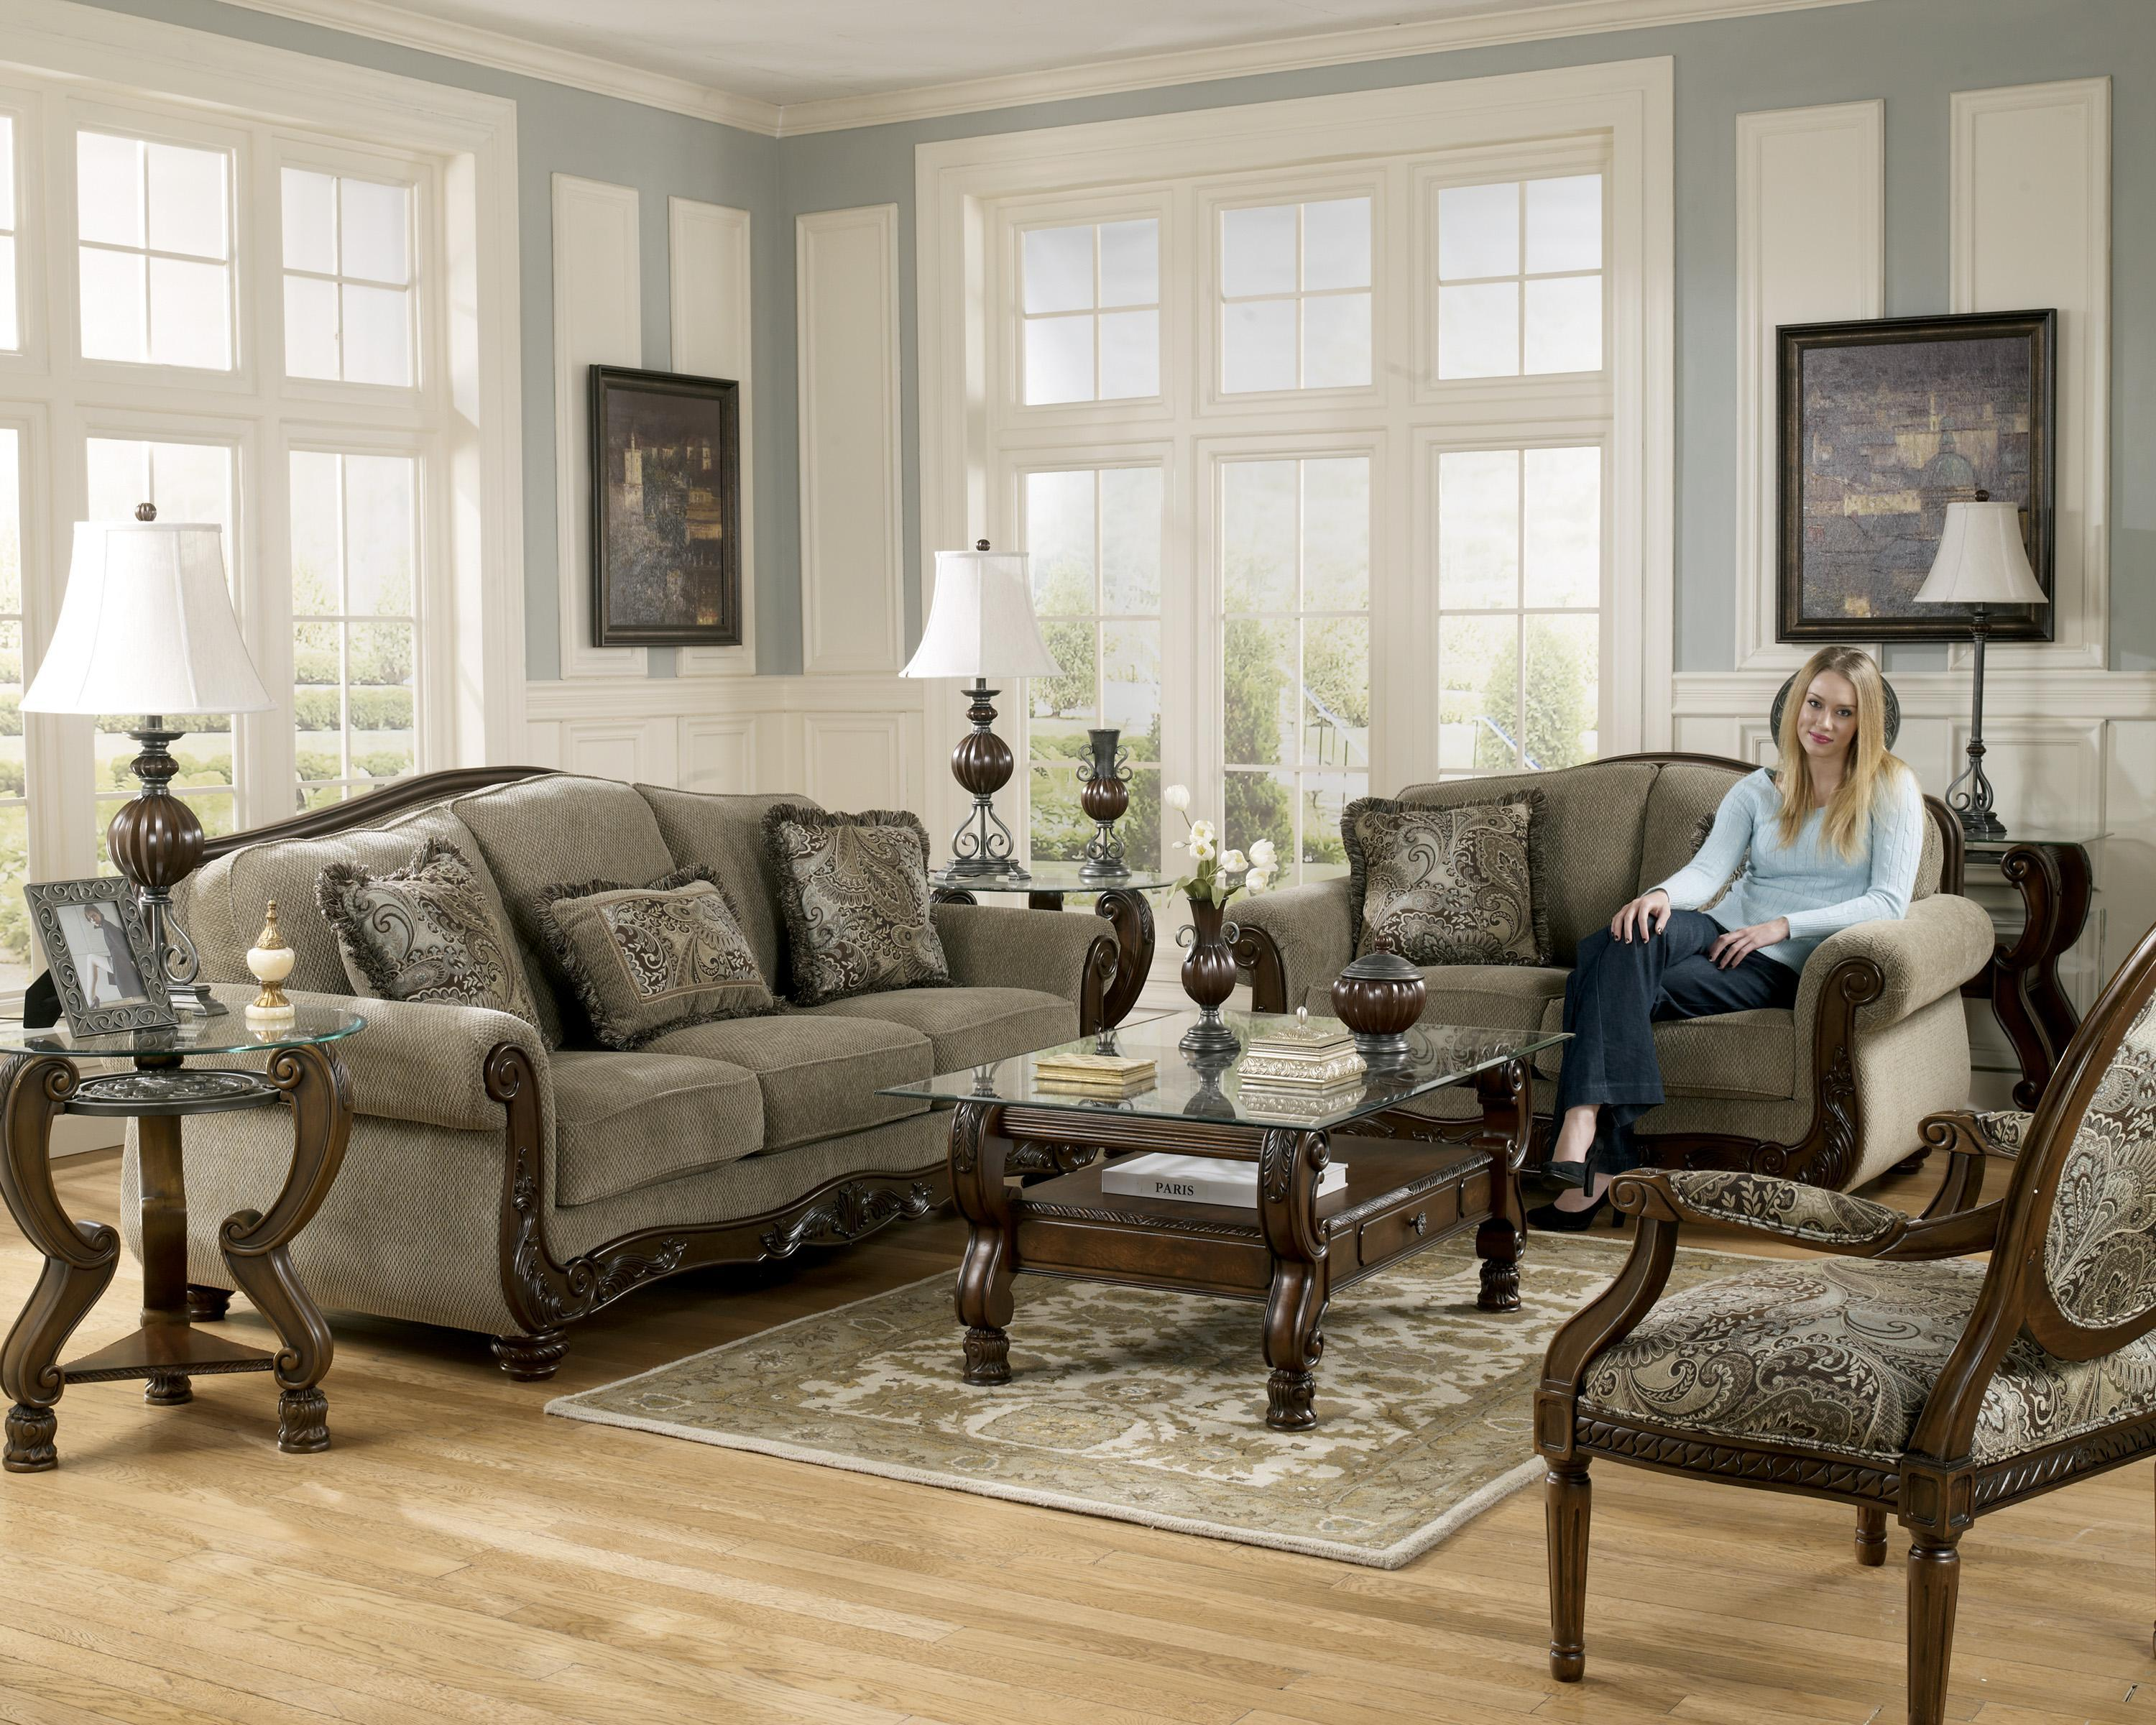 Signature Design By Ashley Fresco Traditional Camel Back Sofa With Exposed  Wood Trim | Rotmans | Sofas Worcester, Boston, MA, Providence, RI, ...